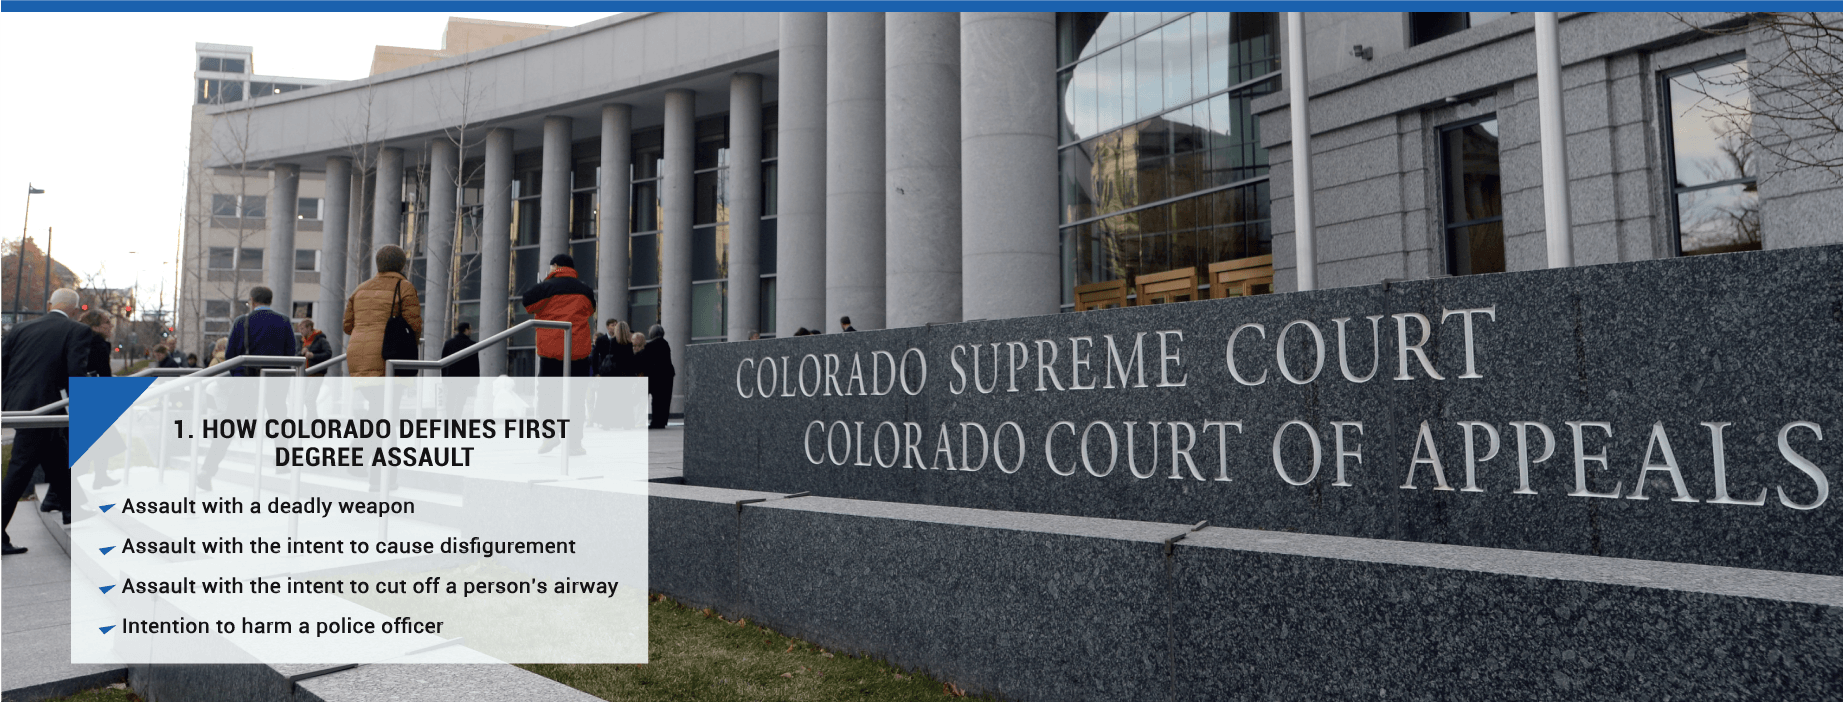 colorado-first-degree-assault-definition